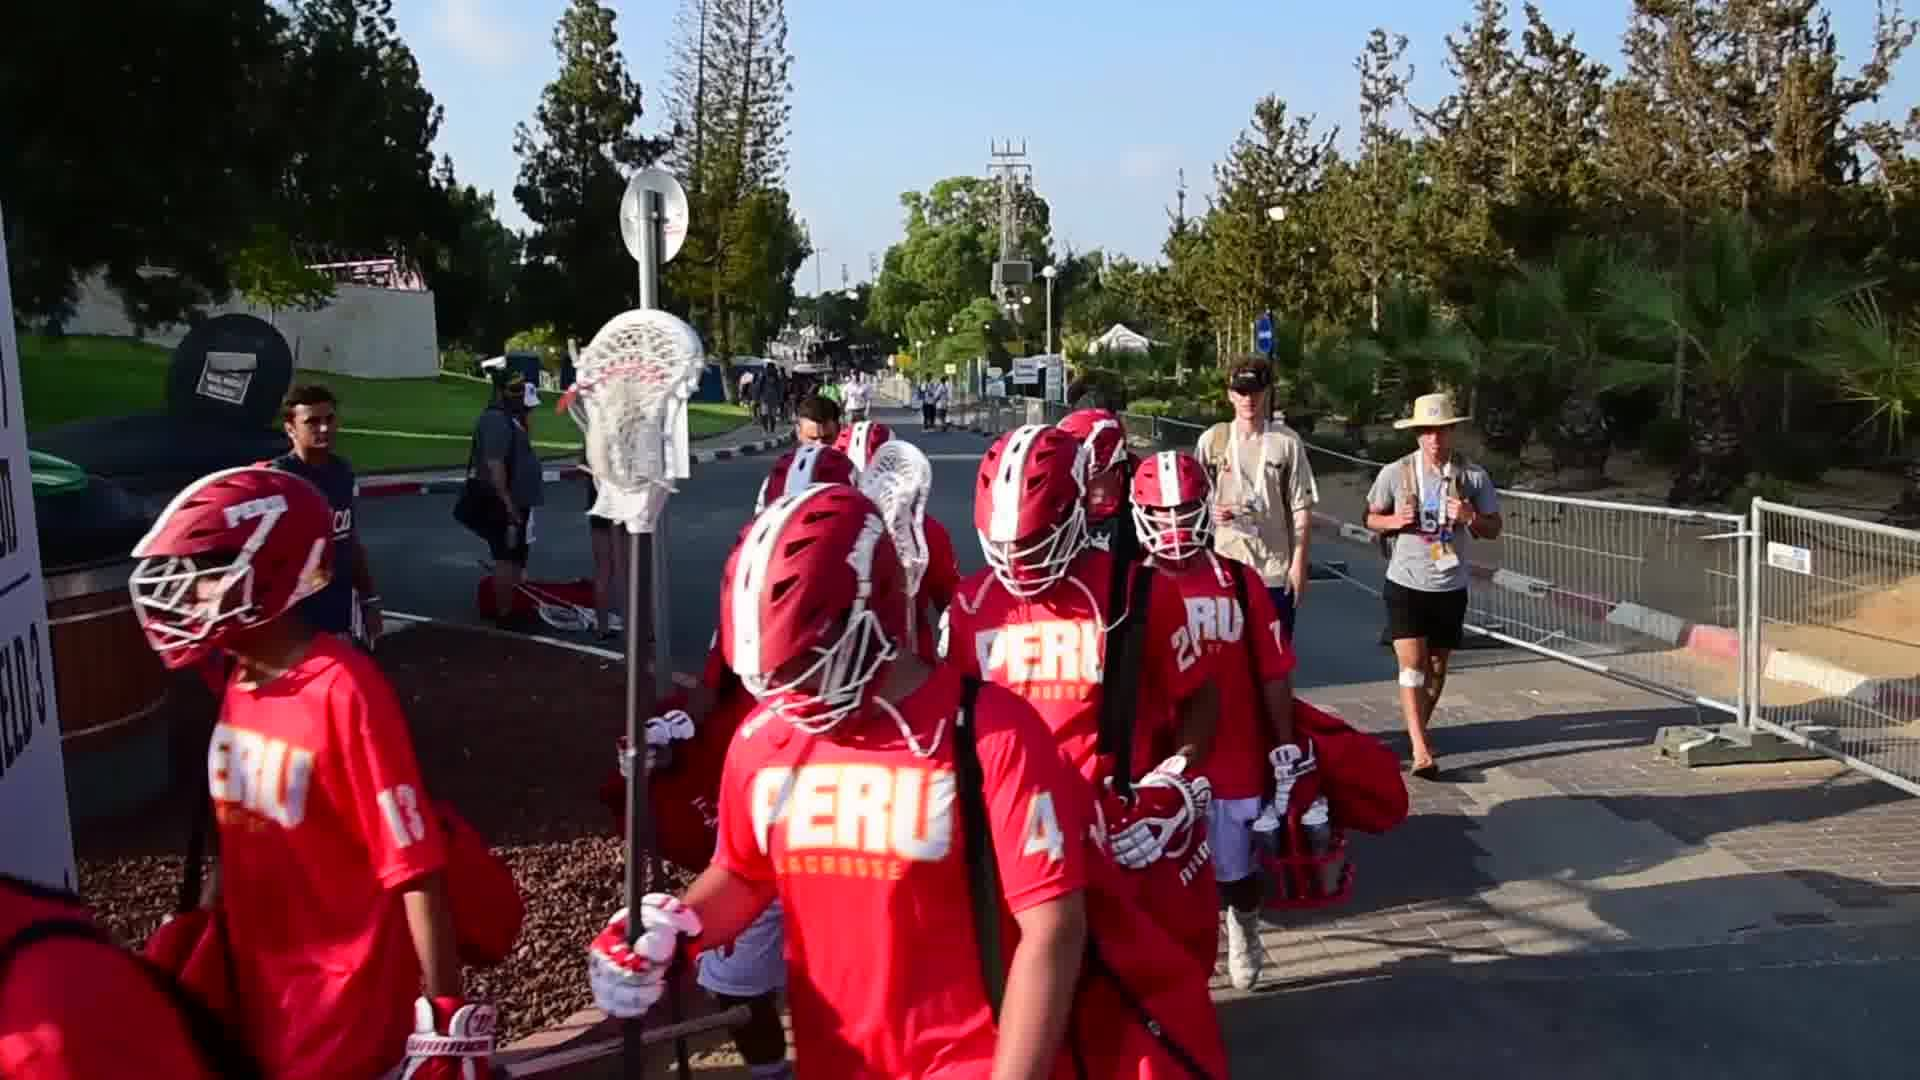 2018 FIL WLC Peru Lacrosse highlights